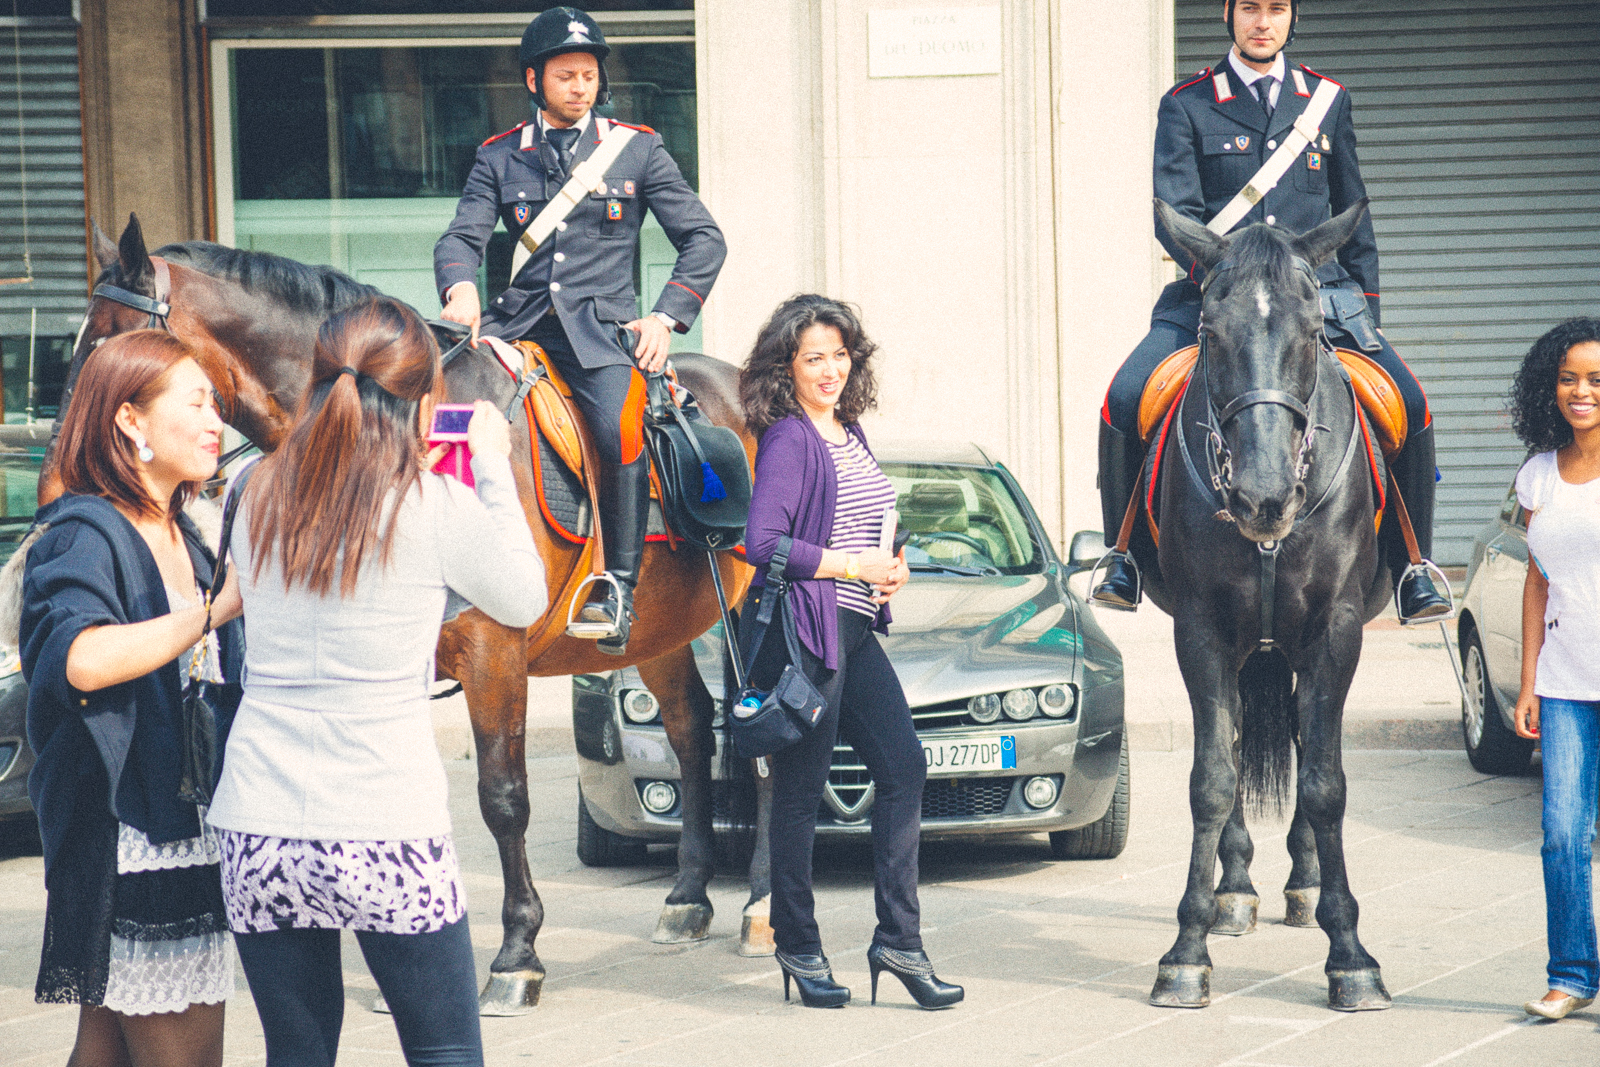 Posing with the police horses